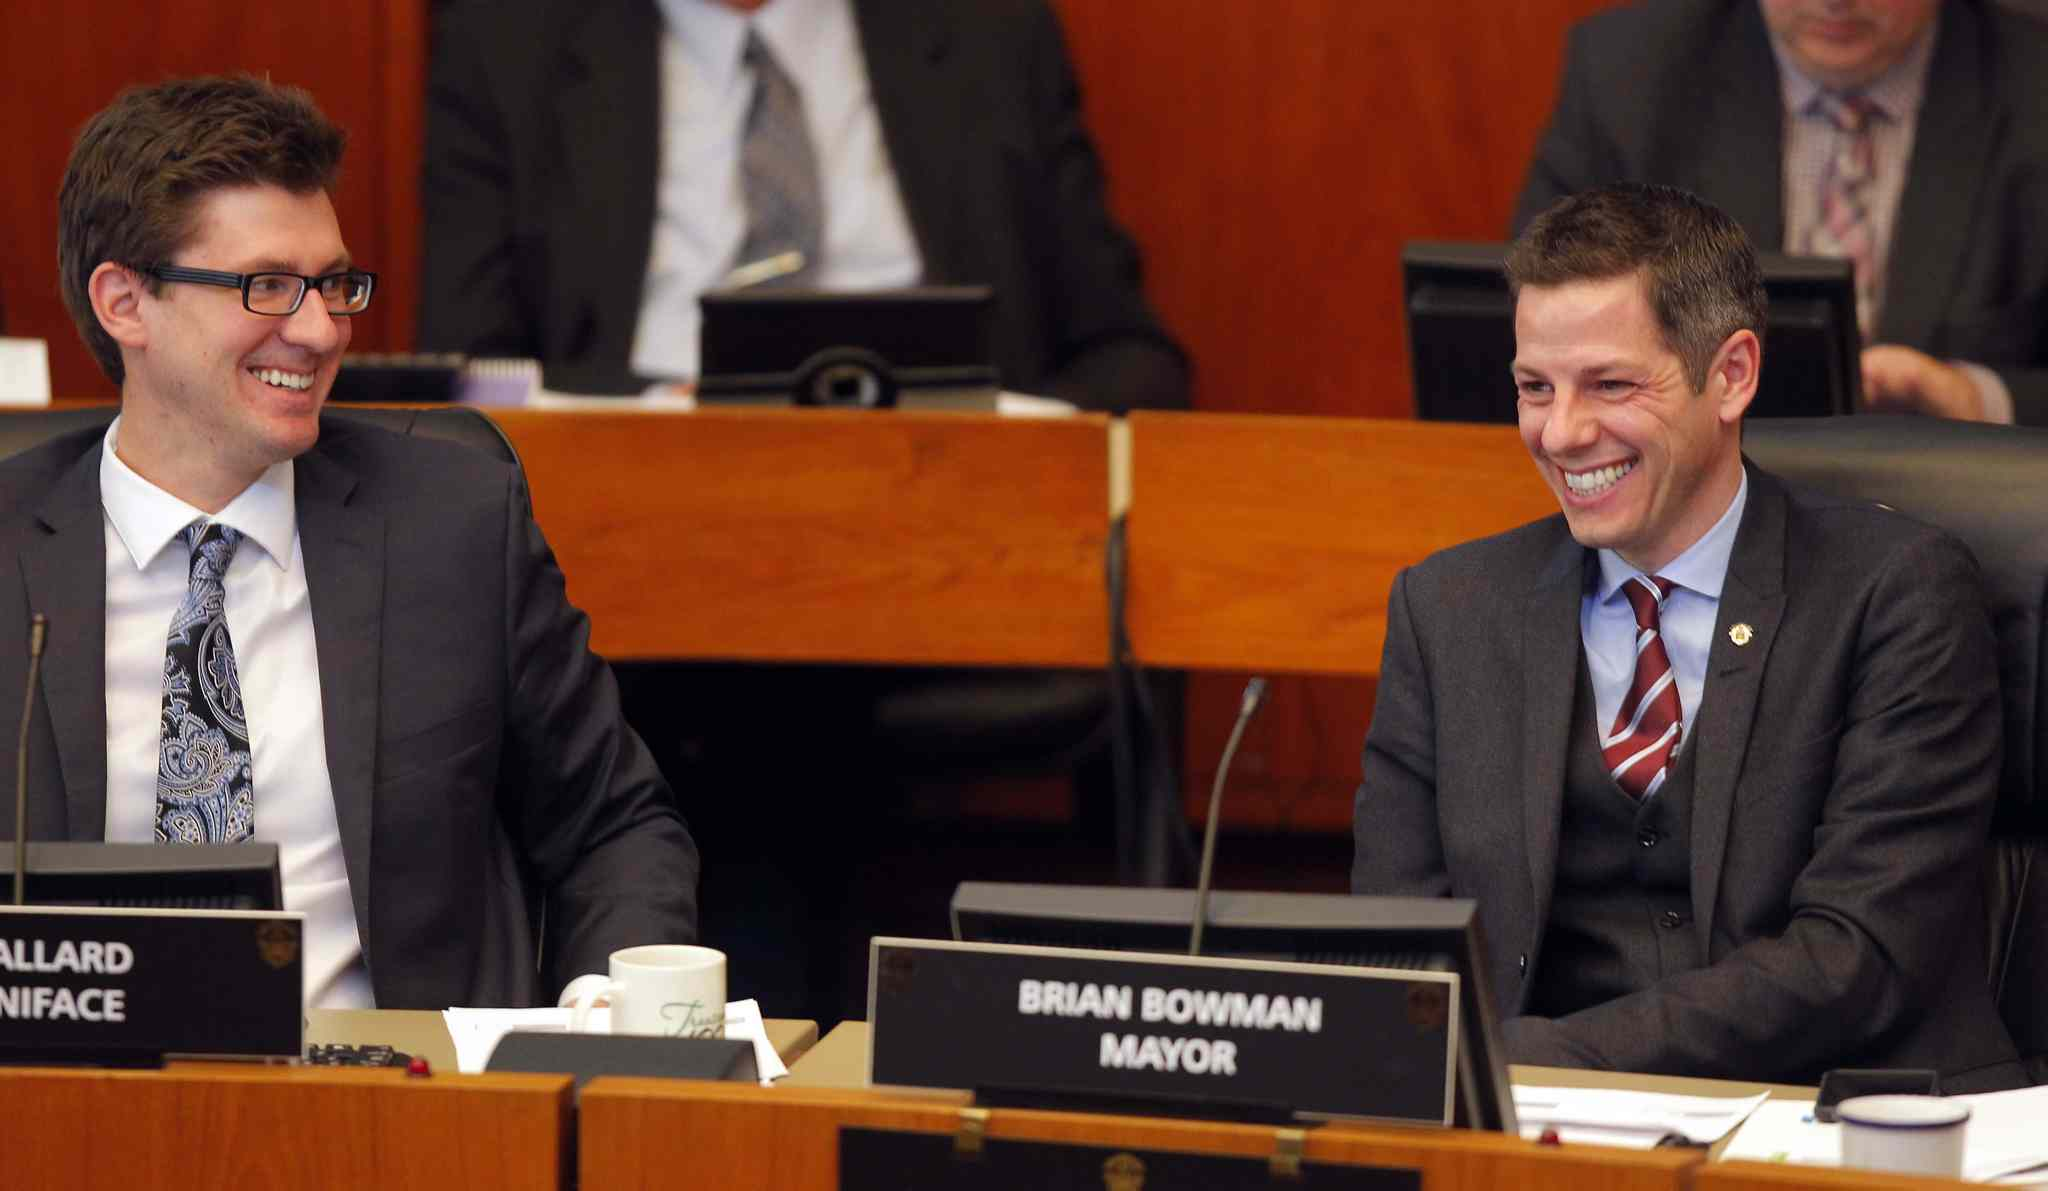 Coun. Matt Allard and Mayor Brian Bowman seem to be having a good time as the 2015 operating and capital budgets are passed Monday.